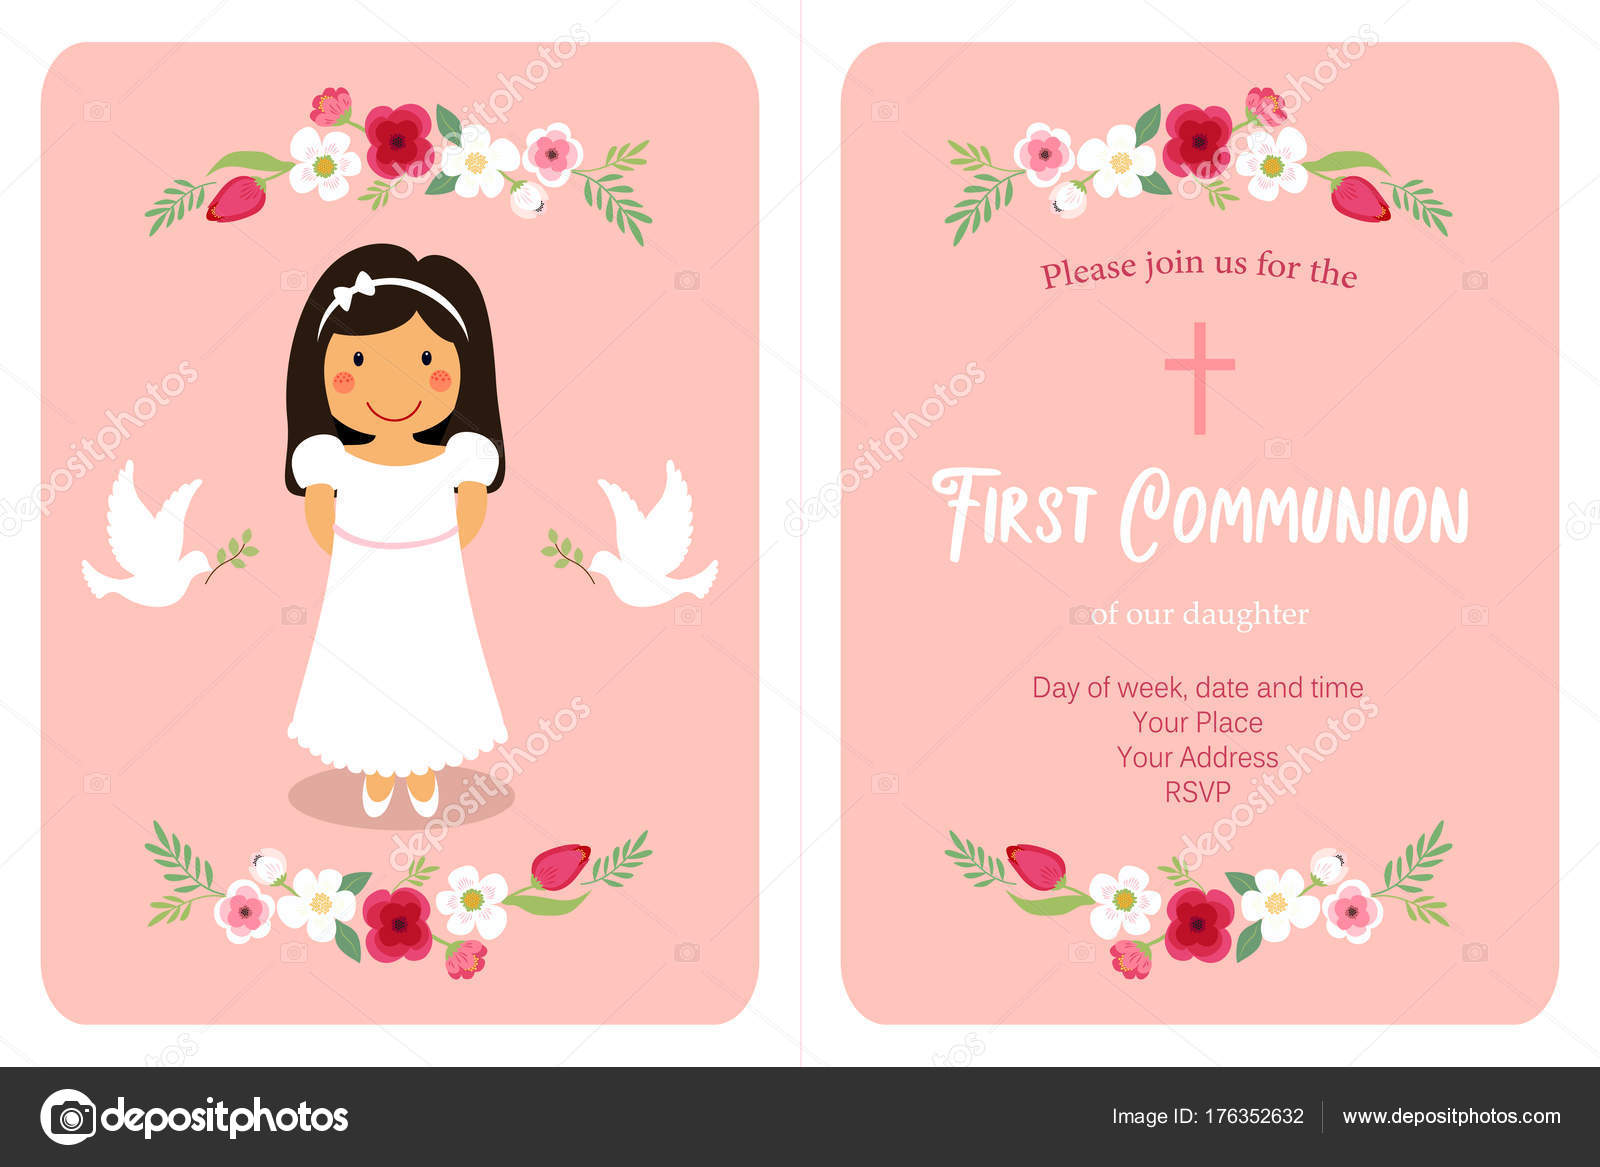 photo relating to First Communion Cards Printable named Printable catholic initially communion playing cards Adorable 1st